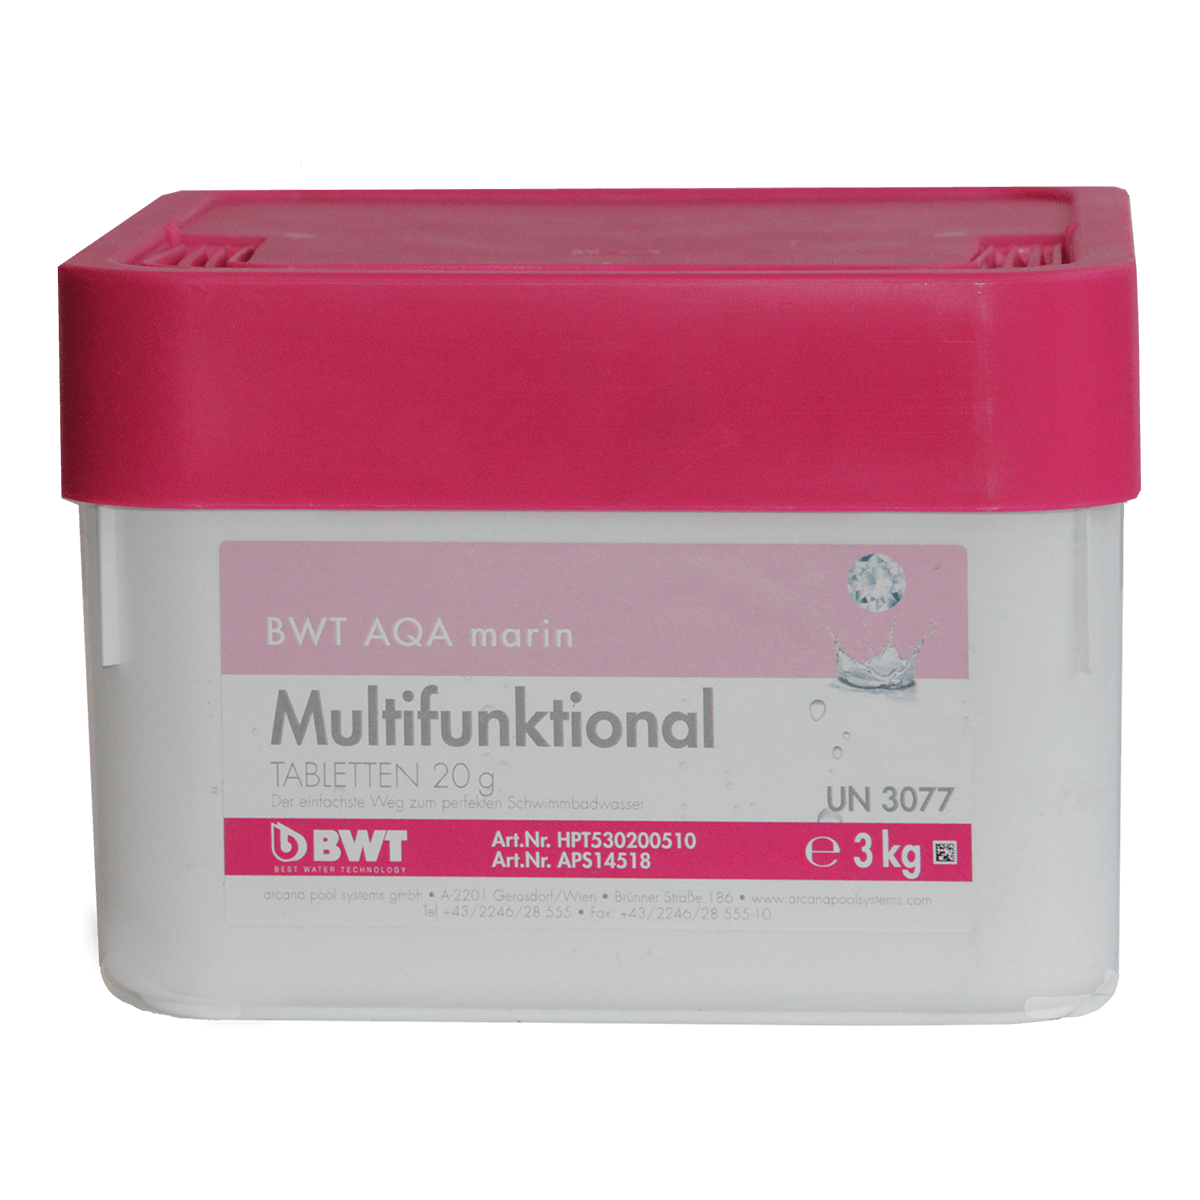 BWT AQA marin Multifunktional Tabletten 20 гр, 3 кг